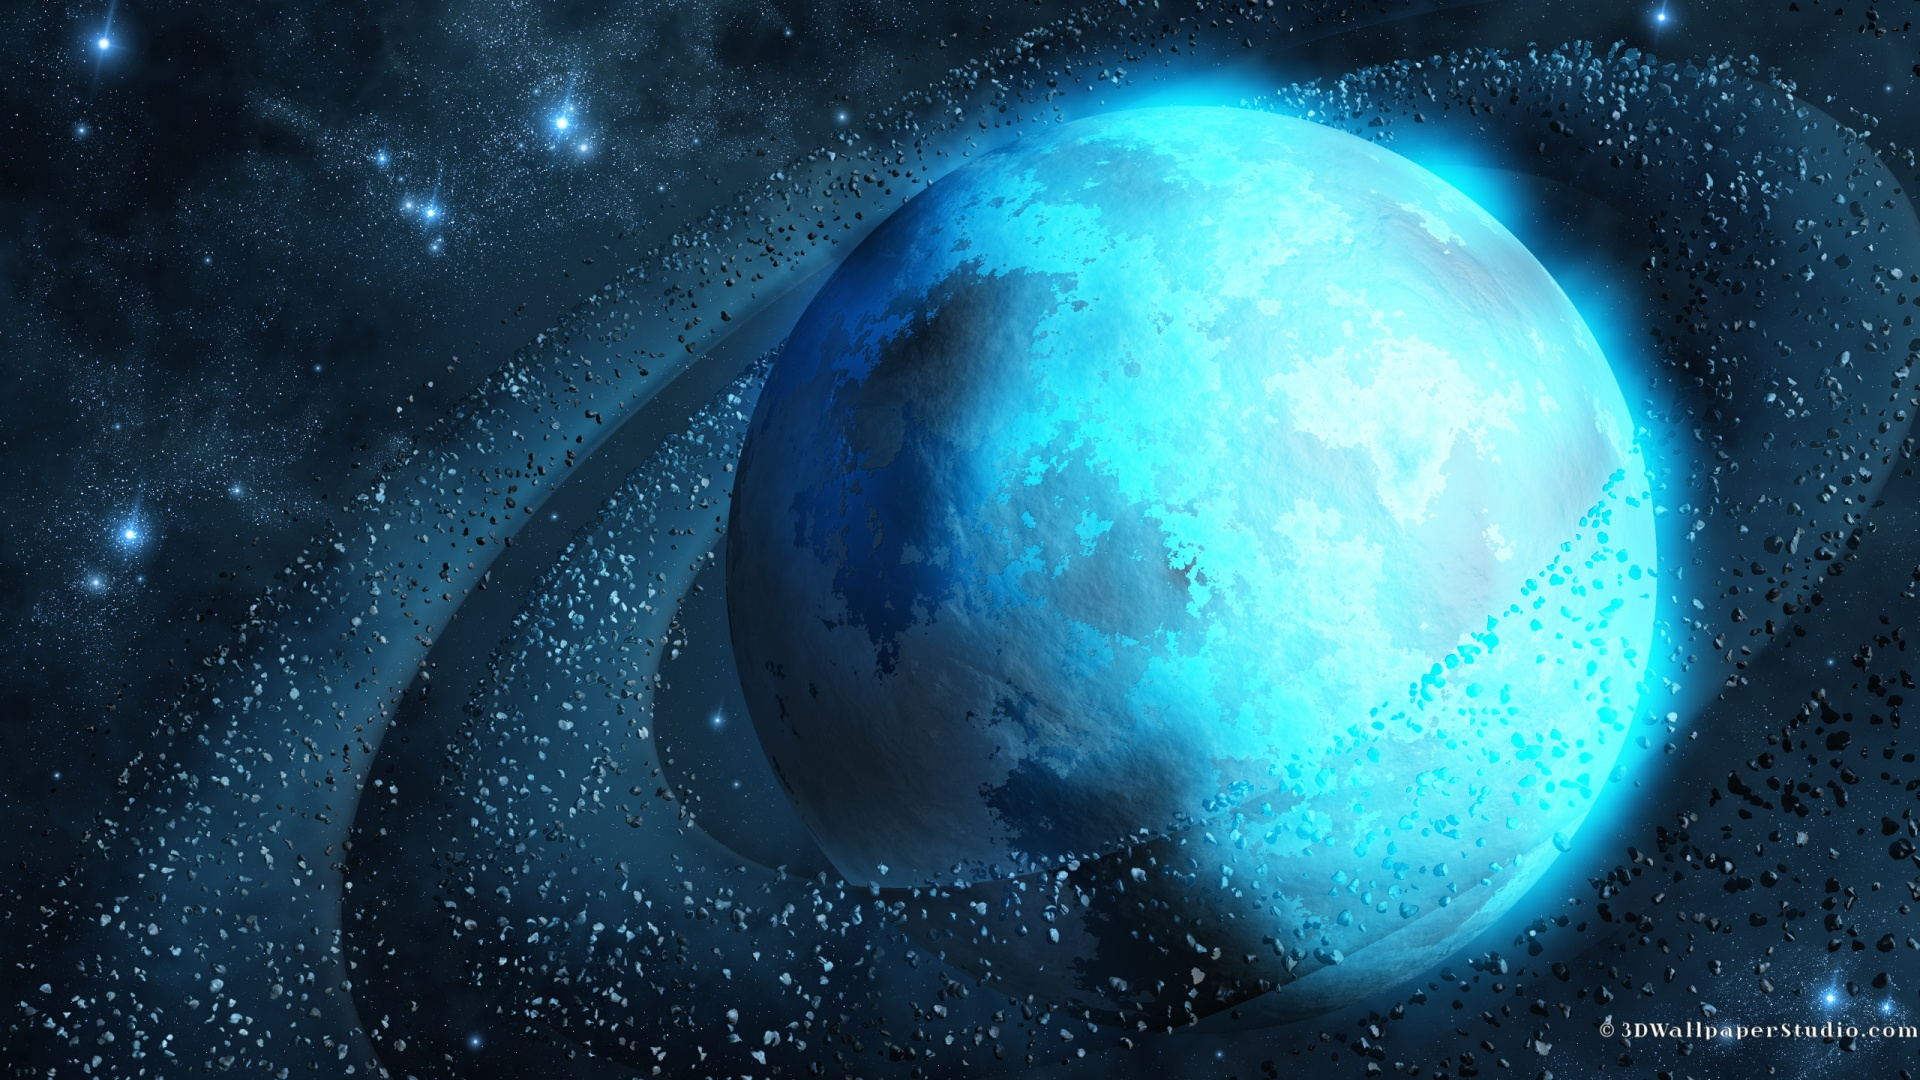 blue space background wallpapers wallpaper 1920x1080 1920x1080